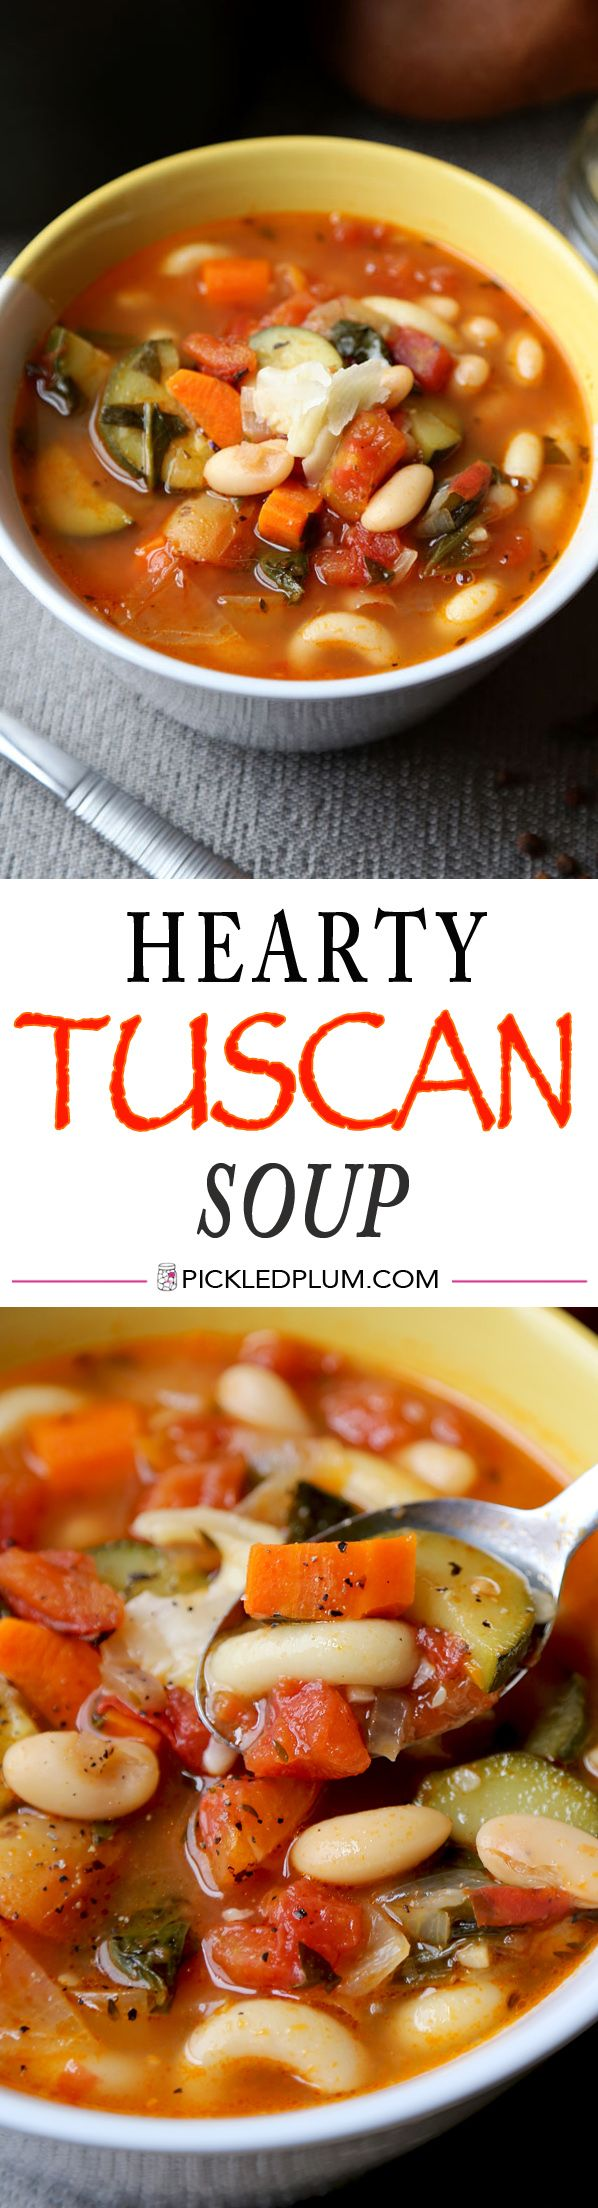 (Jan) - Hearty Tuscan Soup Recipe - vegan and healthy comfort food and only 10 minutes to prep! http://www.pickledplum.com/hearty-tuscan-soup-recipe/